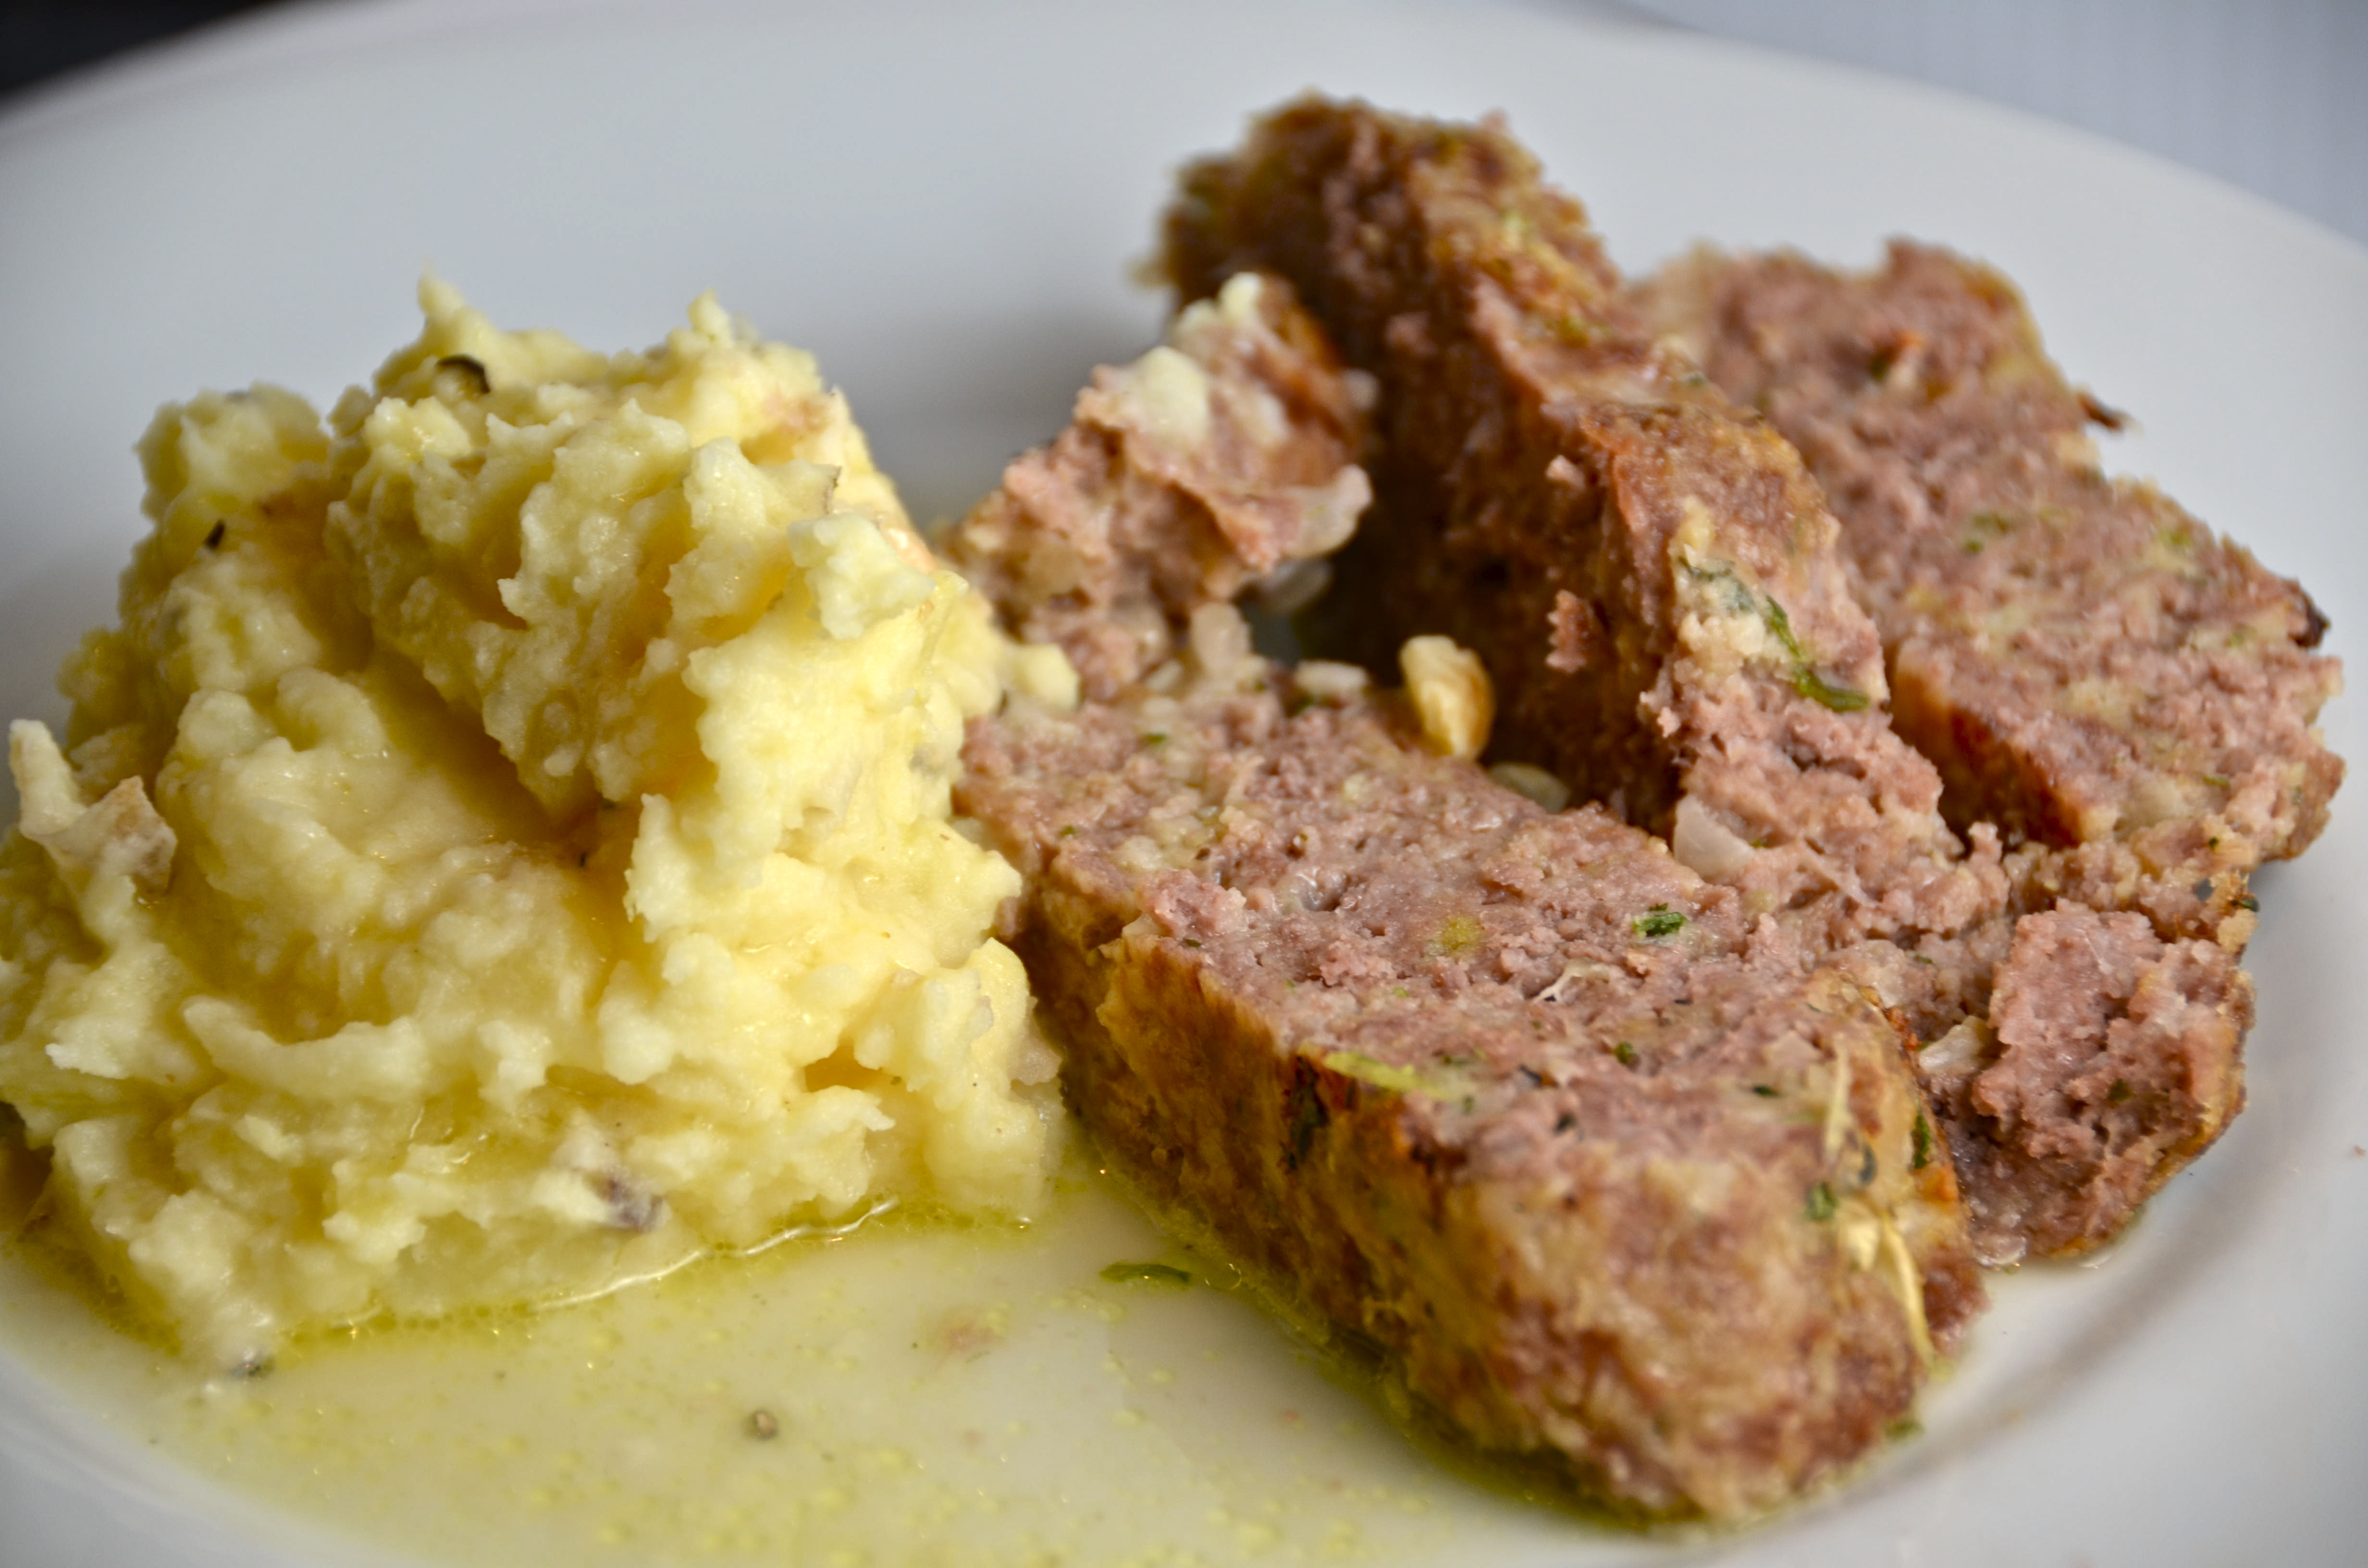 Ina Garten Meatloaf 1770 house meatloaf with garlic sauce and truffled mashed potatoes